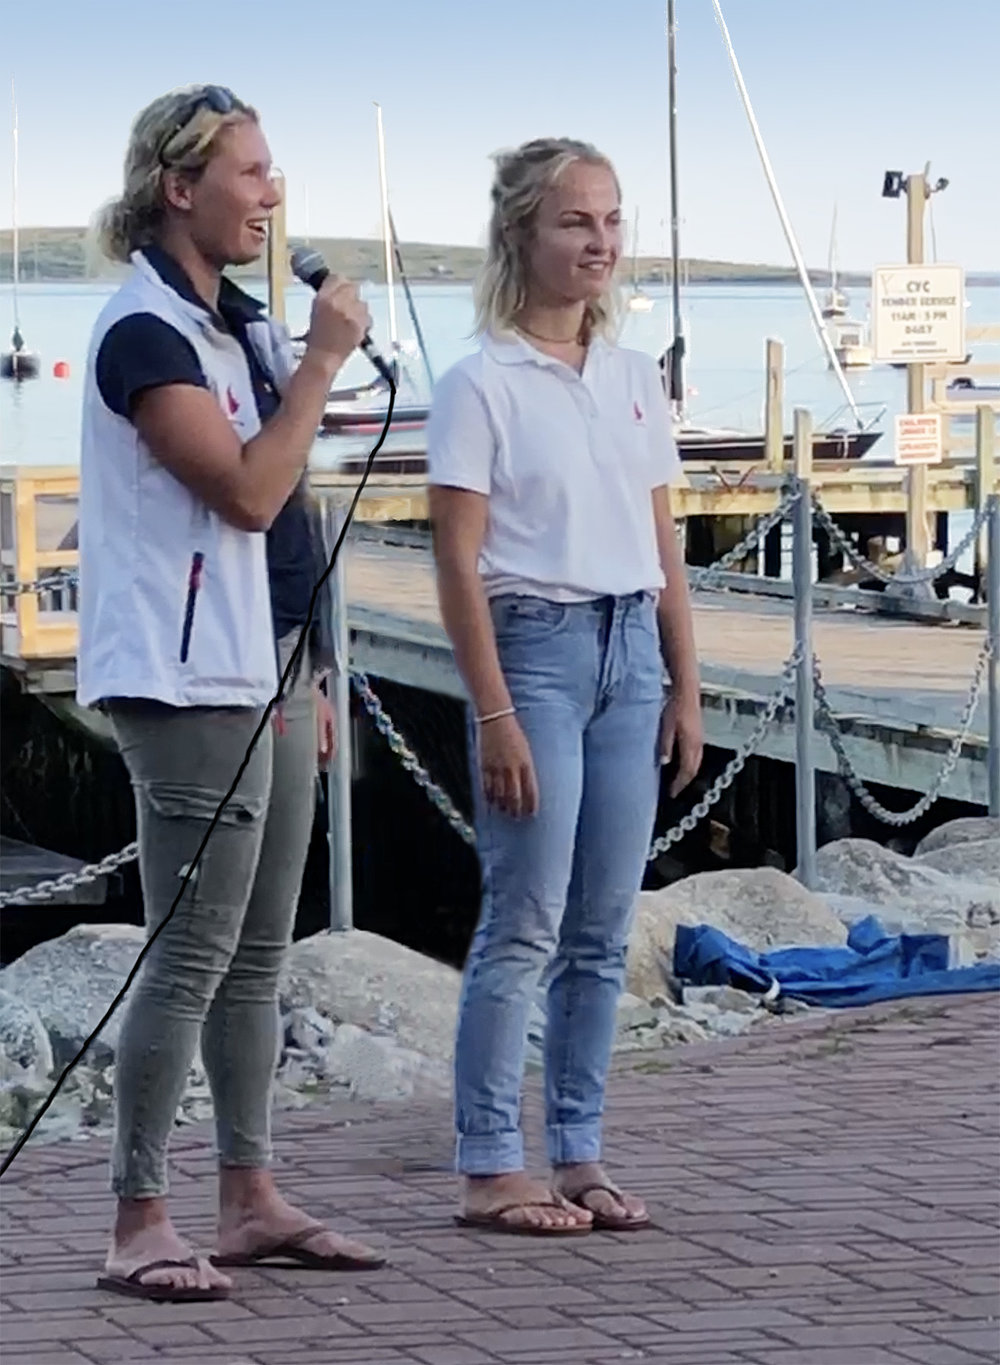 Chester Yaght Club Junior Sailing Fundraiser – 'Keep Sparking Olympic Dreams' speech (July 2018)